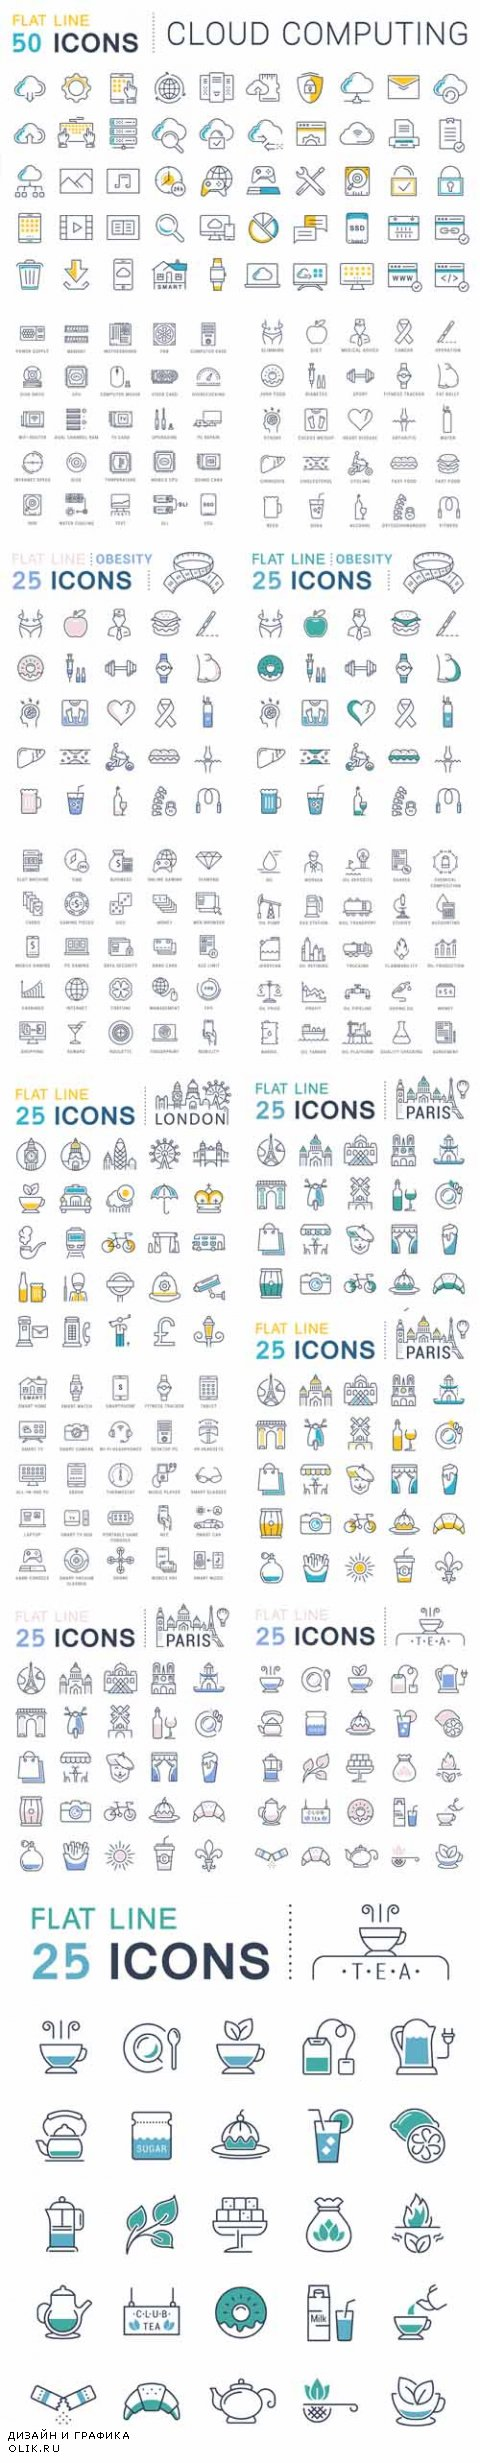 Vector Different Flat Line Icons